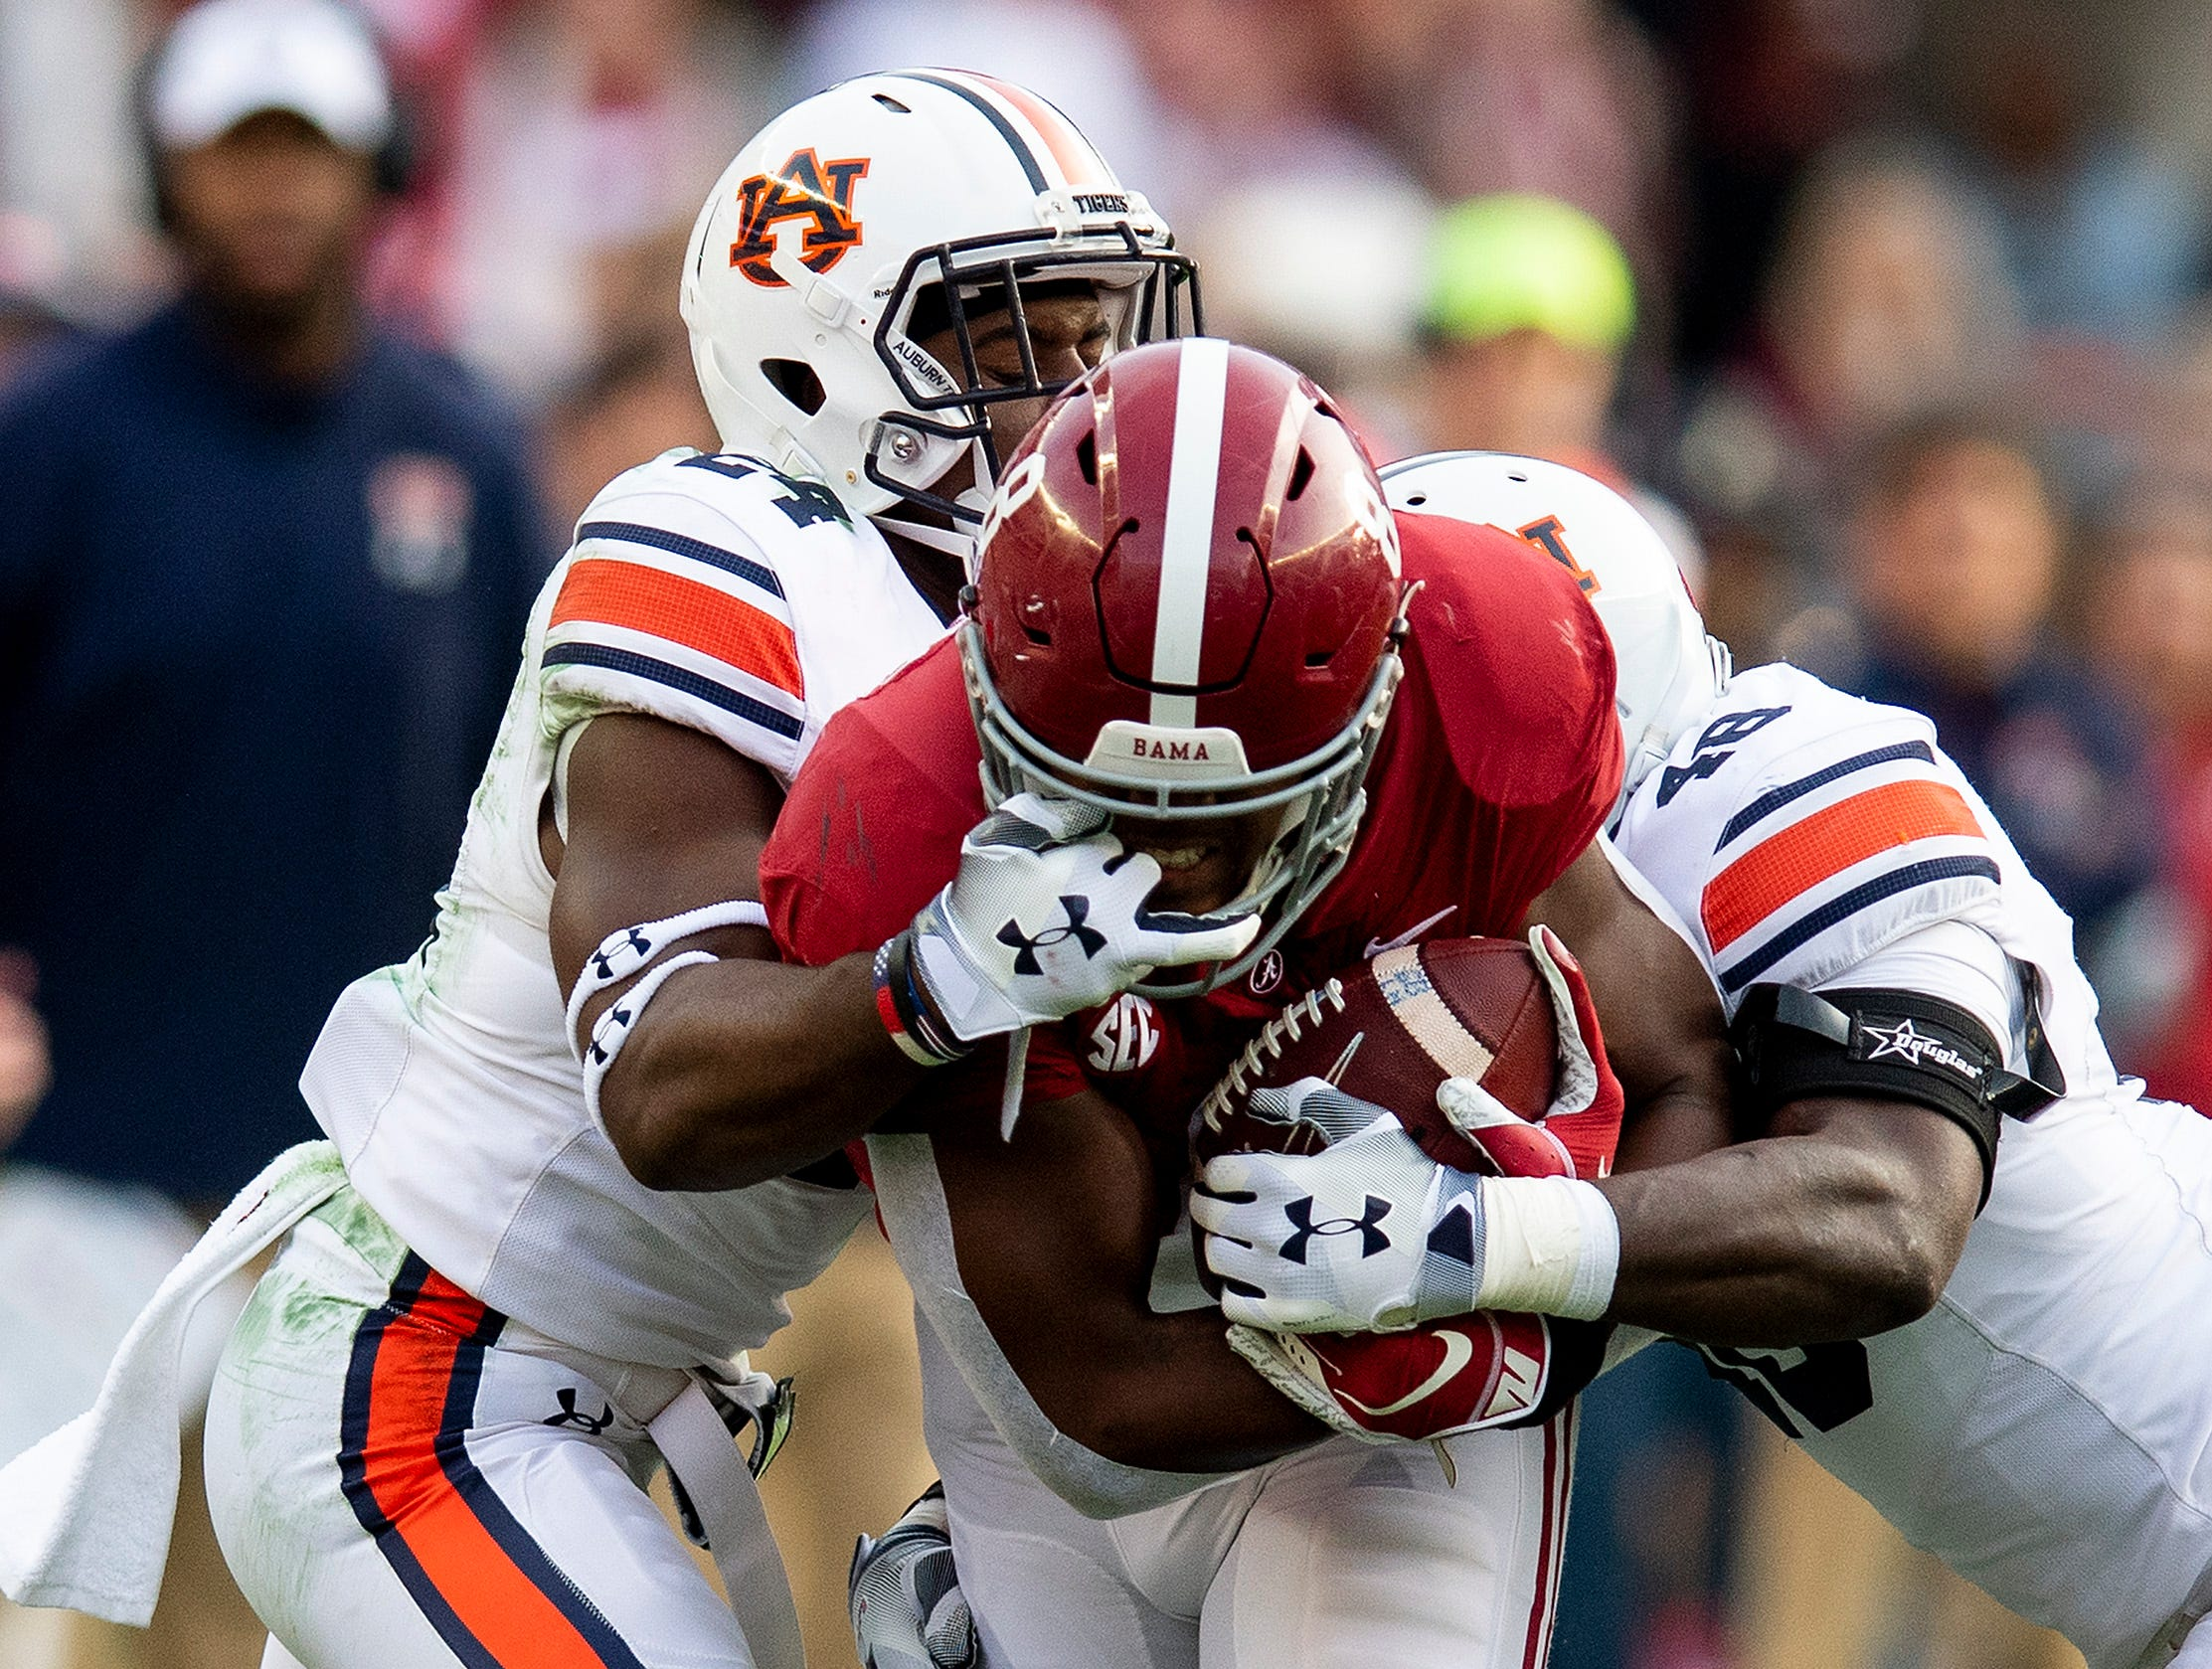 Auburn defensive back Daniel Thomas (24) gets in the facemark of Alabama running back Josh Jacobs (8) in first half action during the Iron Bowl at Bryant-Denny Stadium in Tuscaloosa, Ala., on Saturday November 24, 2018.